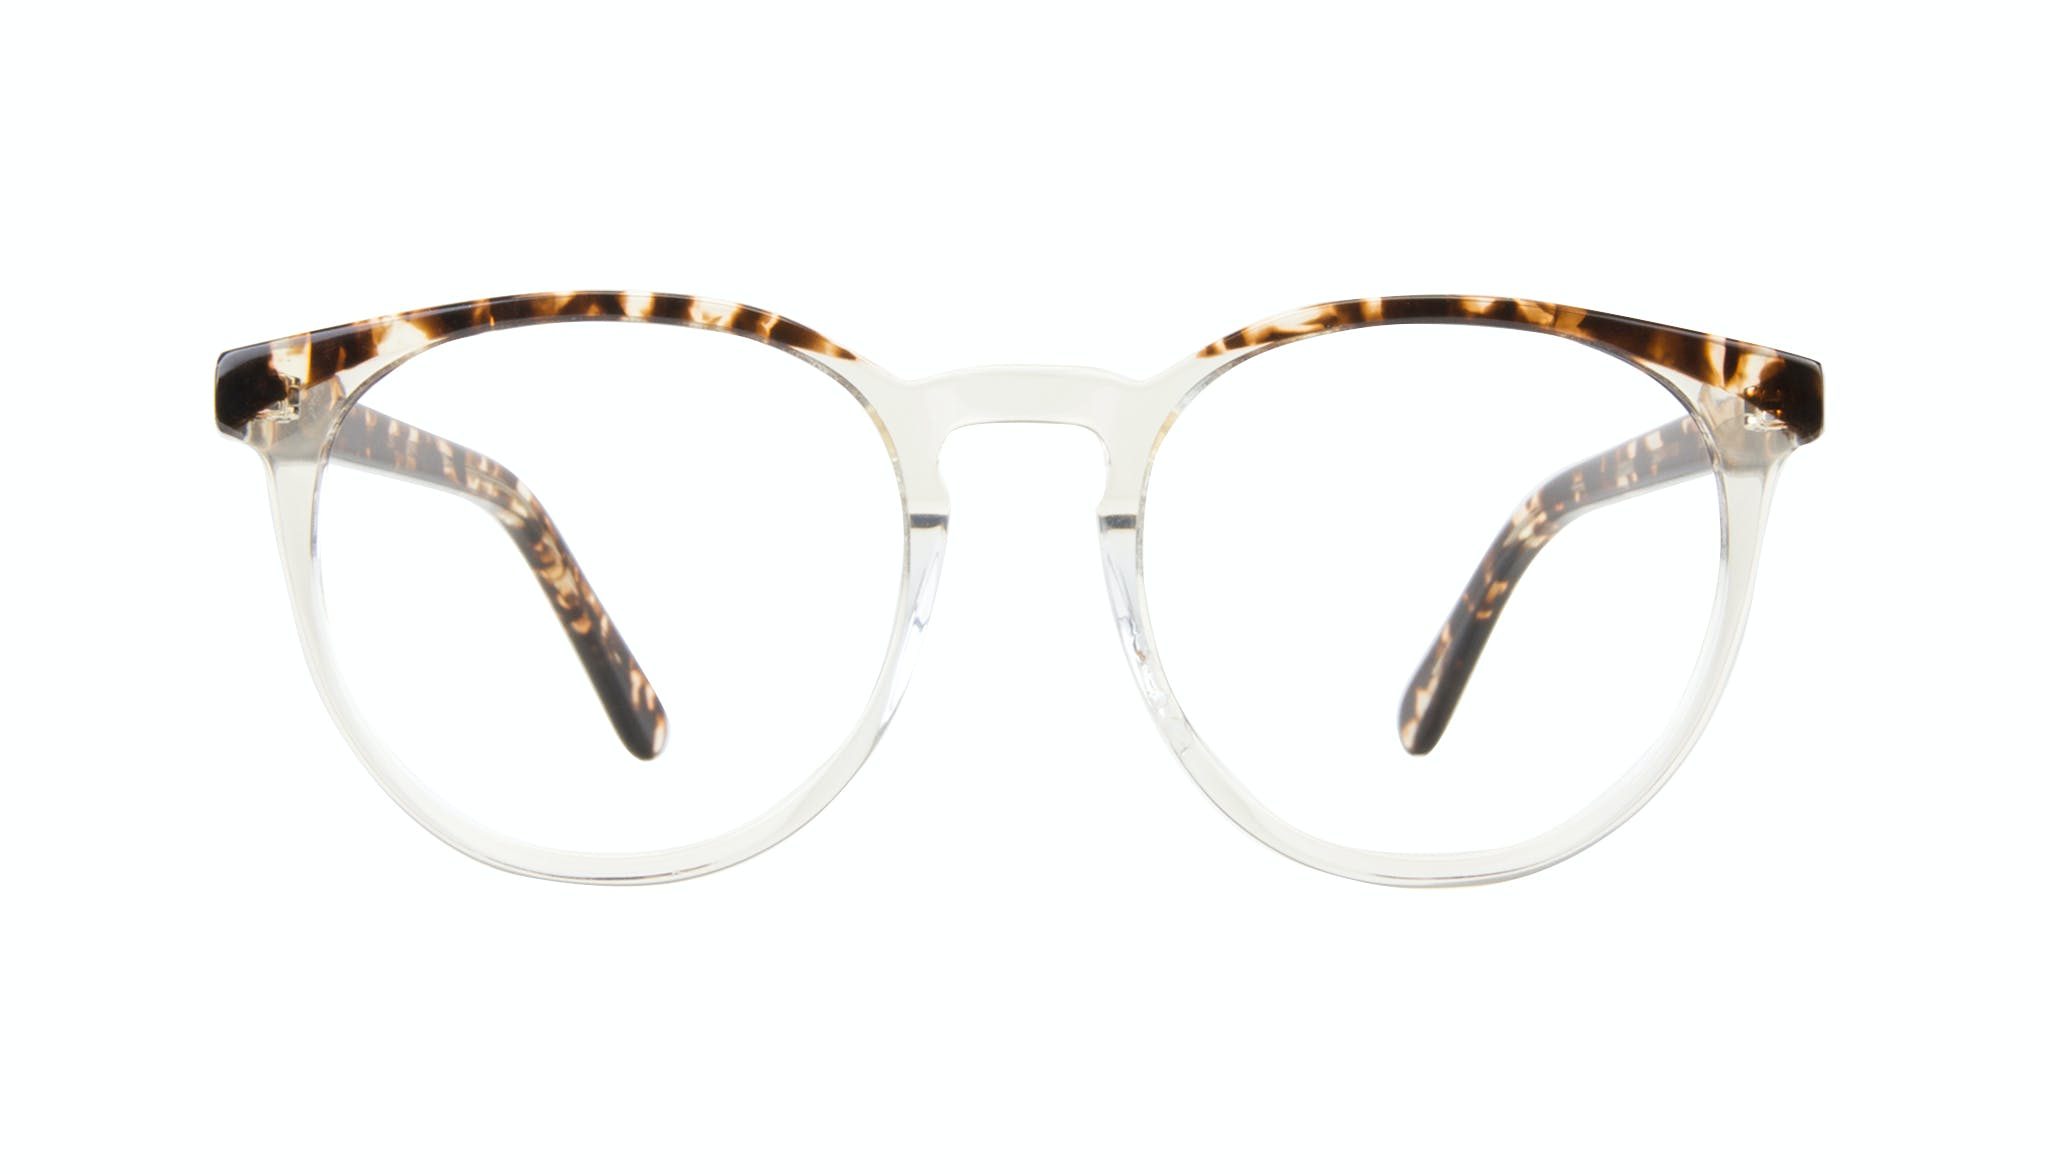 Affordable Fashion Glasses Round Eyeglasses Women Brilliant Blond Tortoise